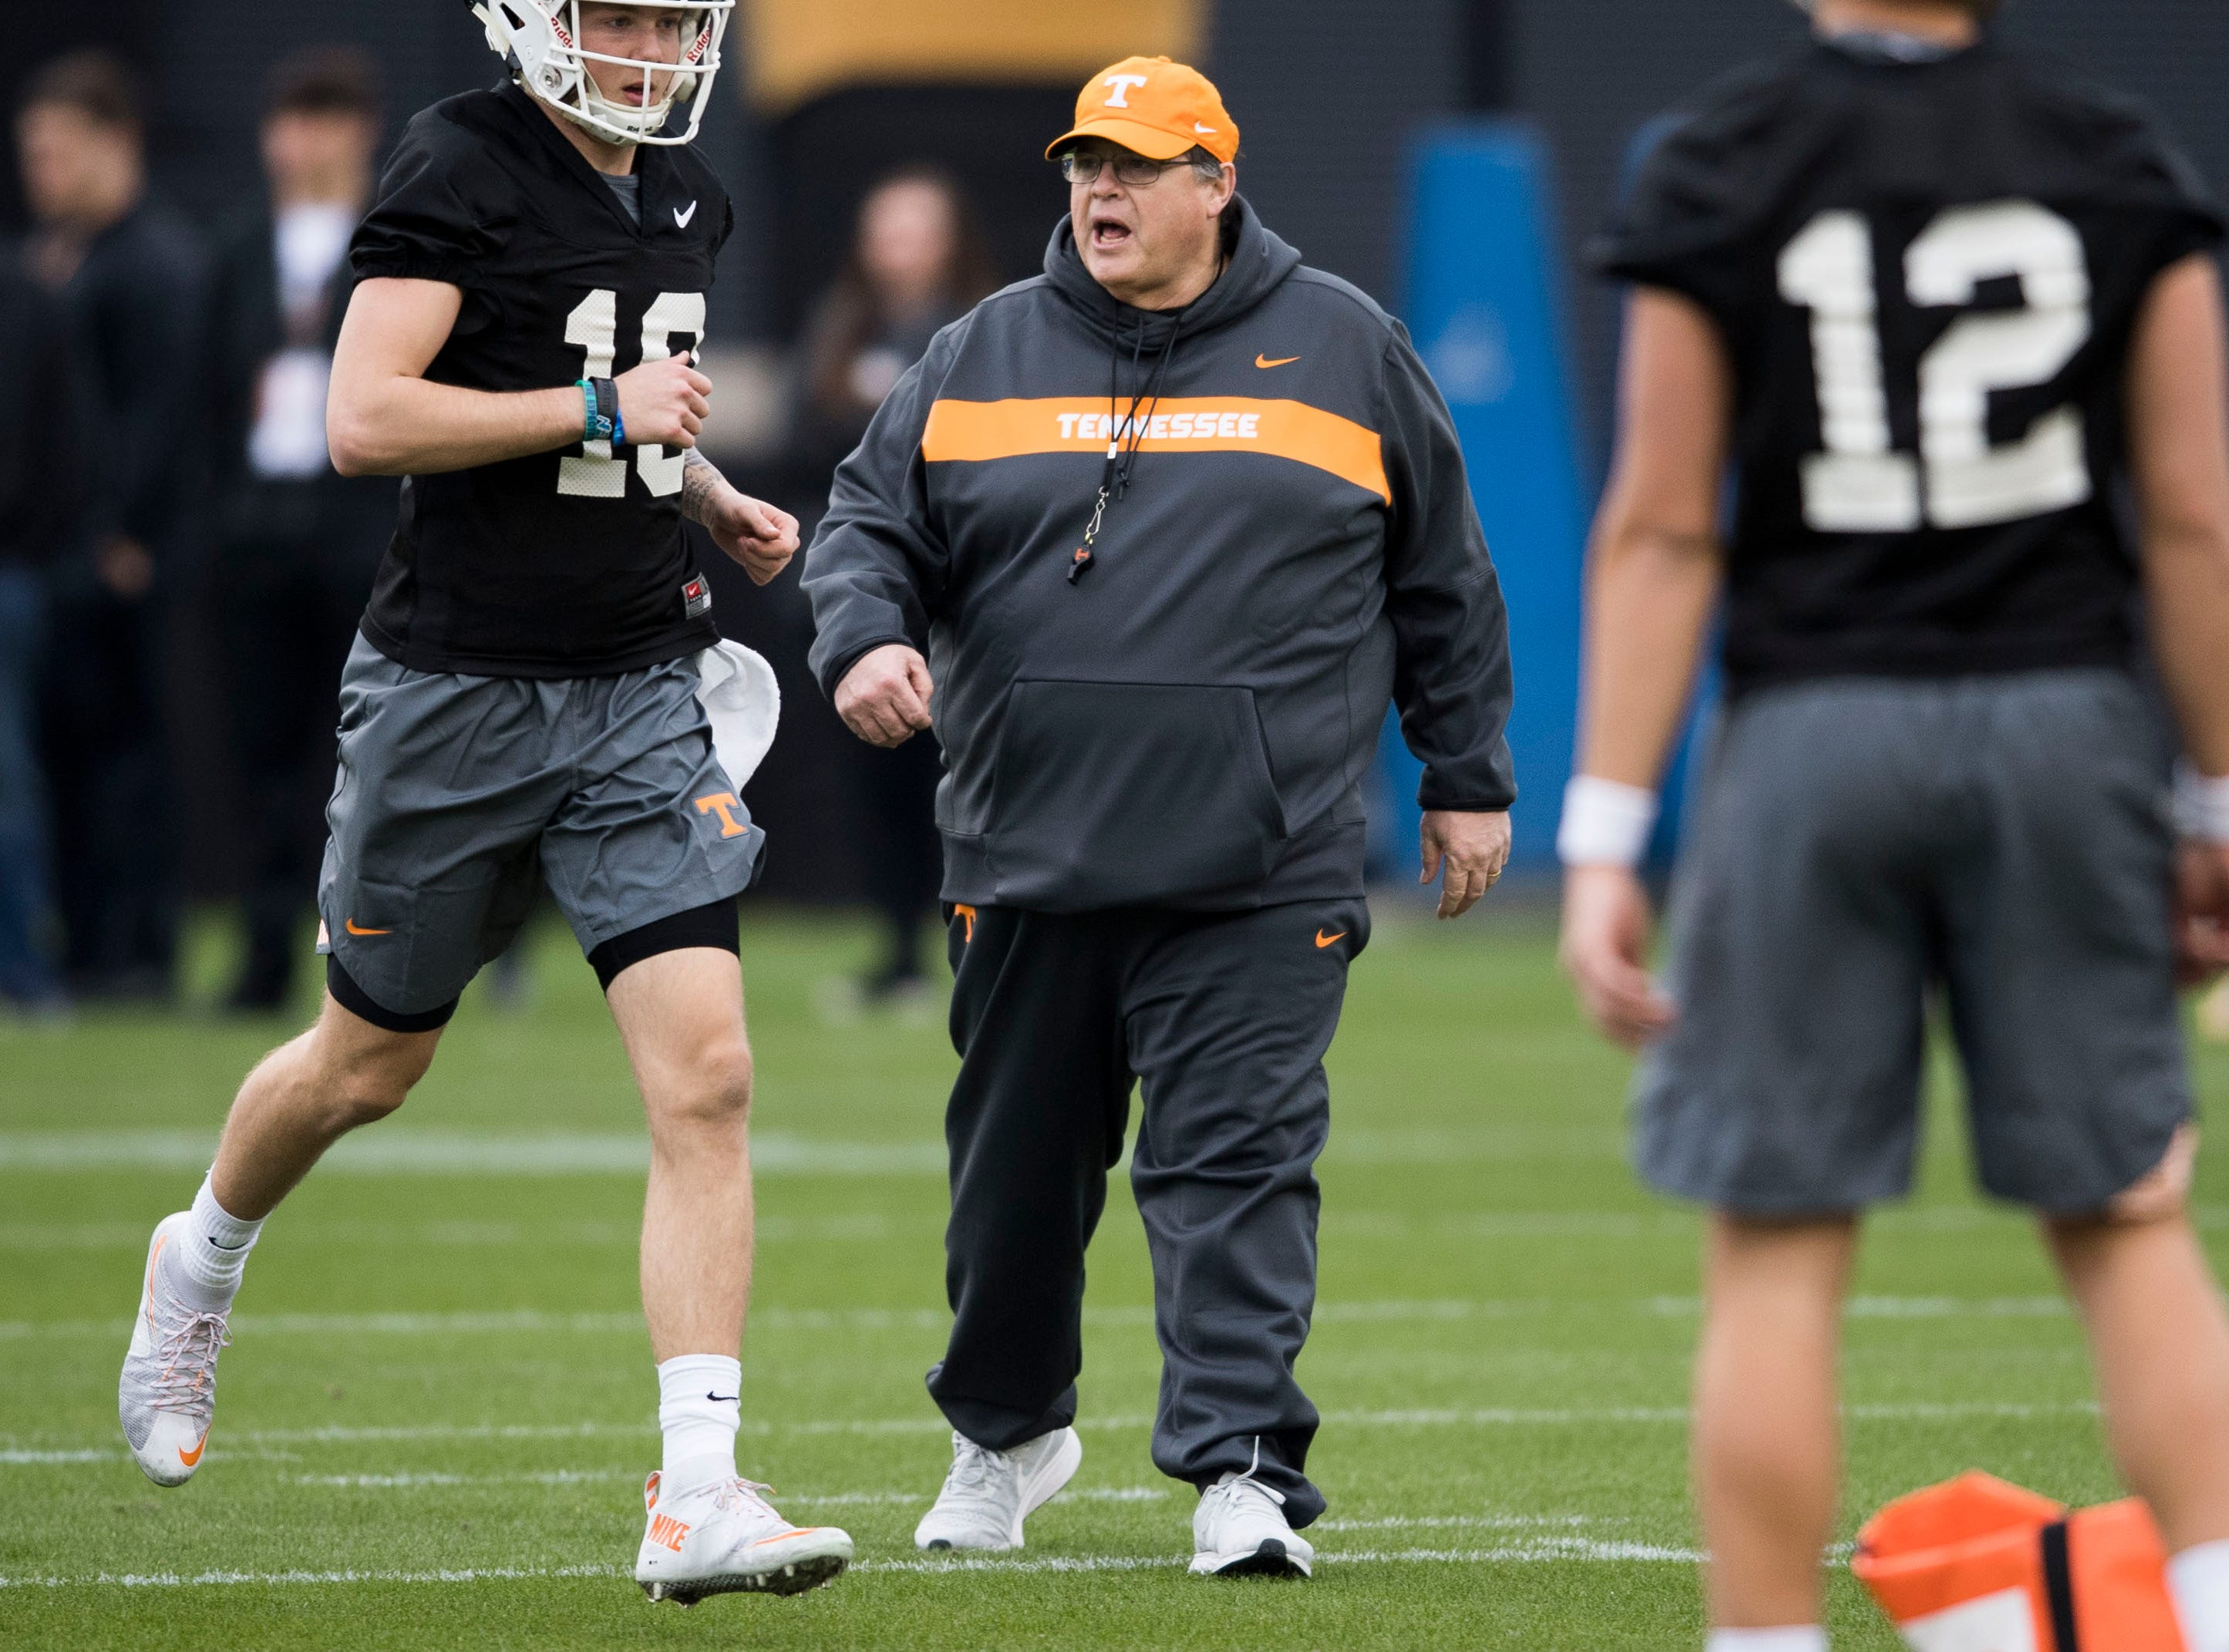 Tennessee offensive coordinator Jim Chaney walks on the field during Tennessee football's first practice of the spring season at University of Tennessee Thursday, March 7, 2019.